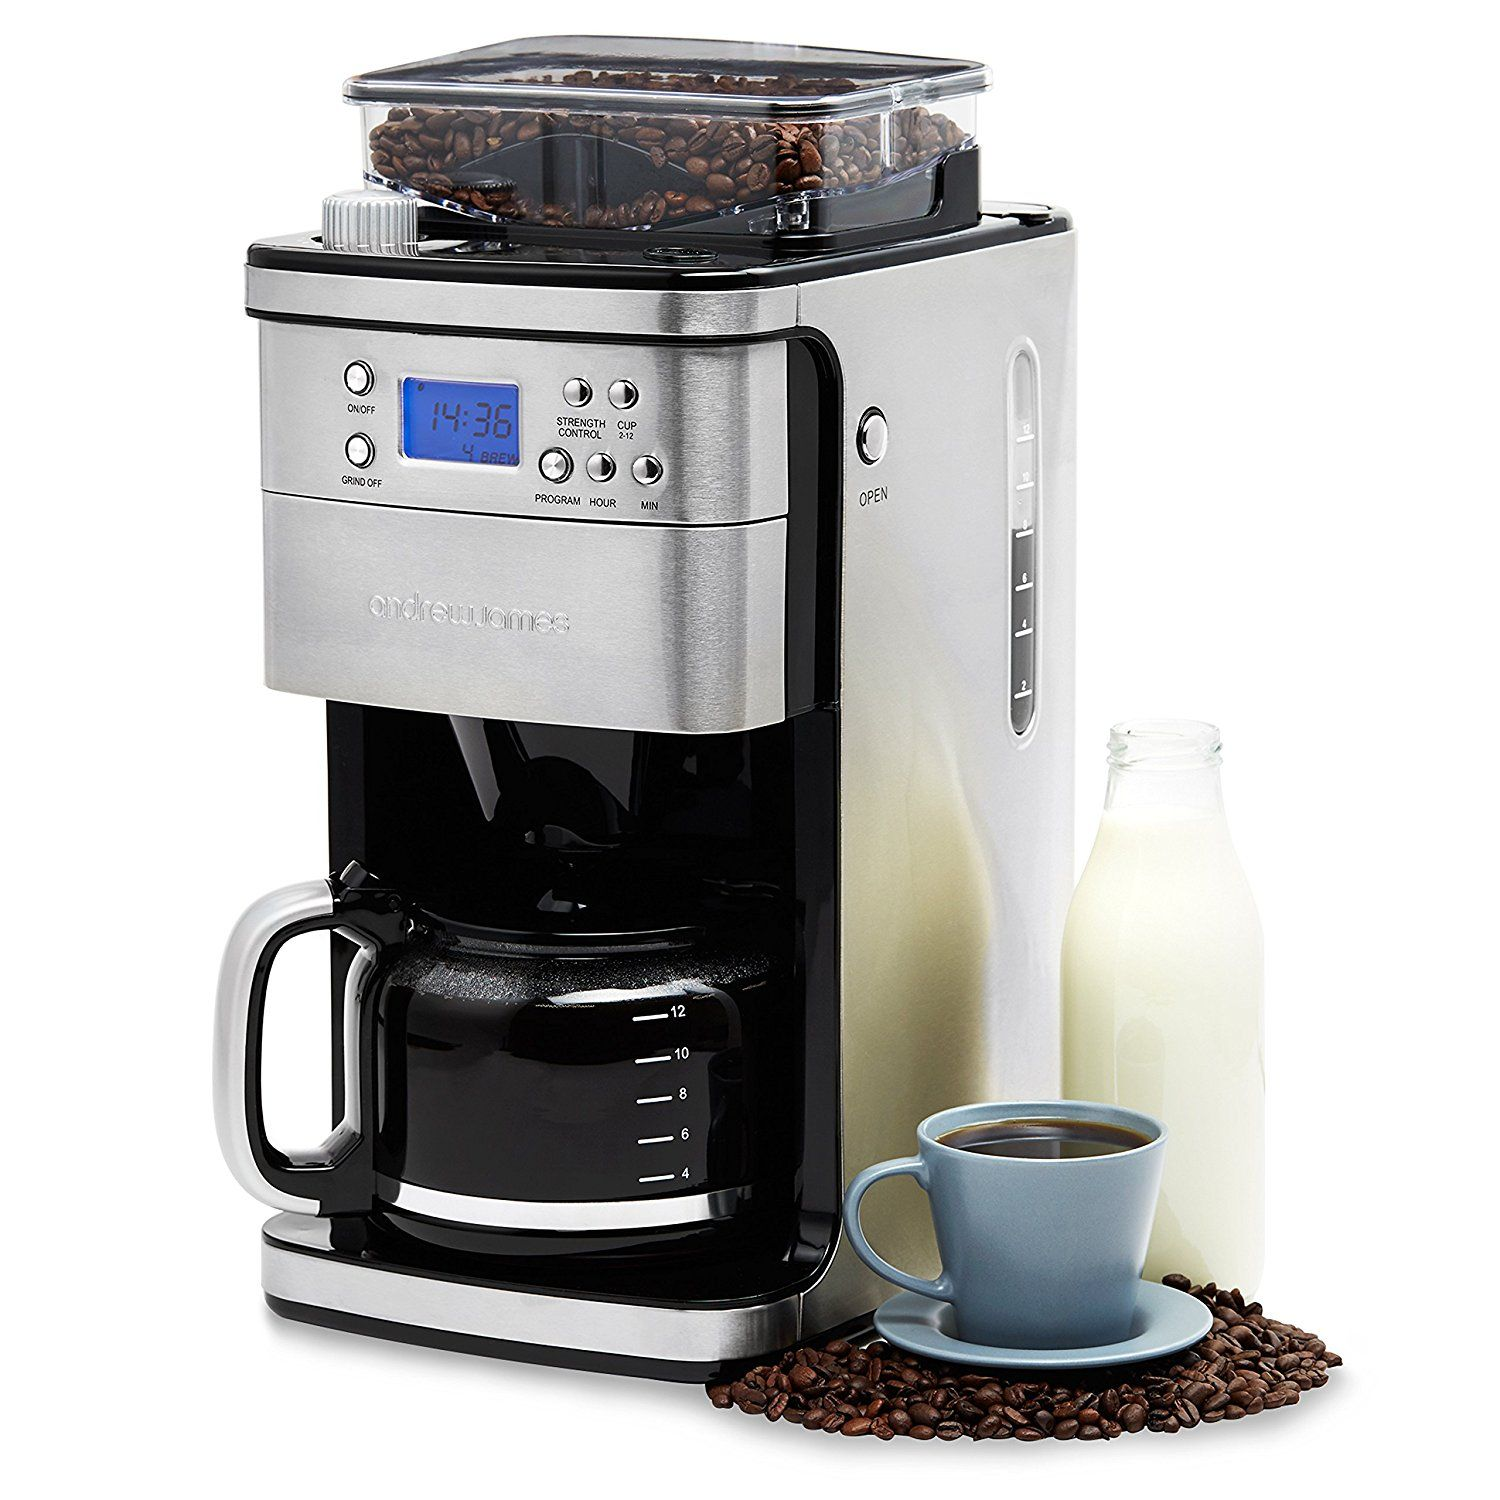 Andrew James Filter Coffee Machine With Integrated Bean Grinder New And Improved Model